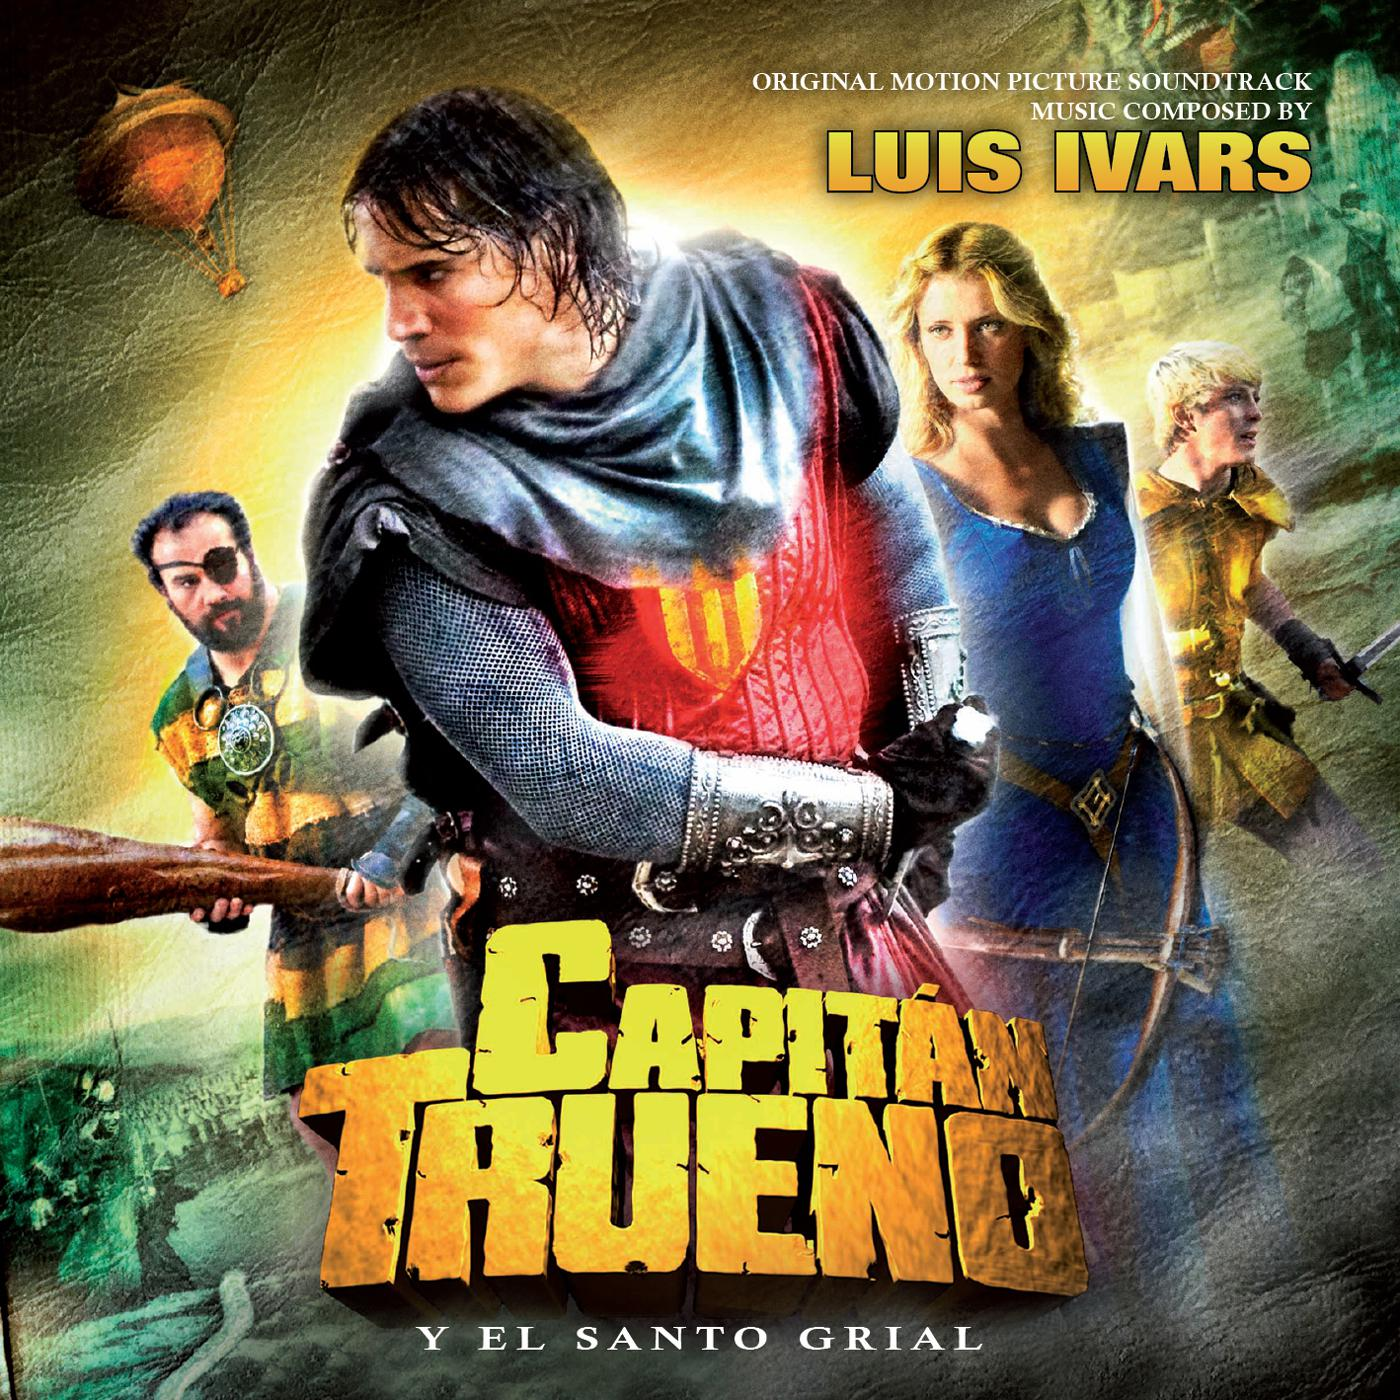 Capitán Trueno y el Santo Grial (Captain Thunder and the Holy Grail) [Original Motion Picture Soundtrack]